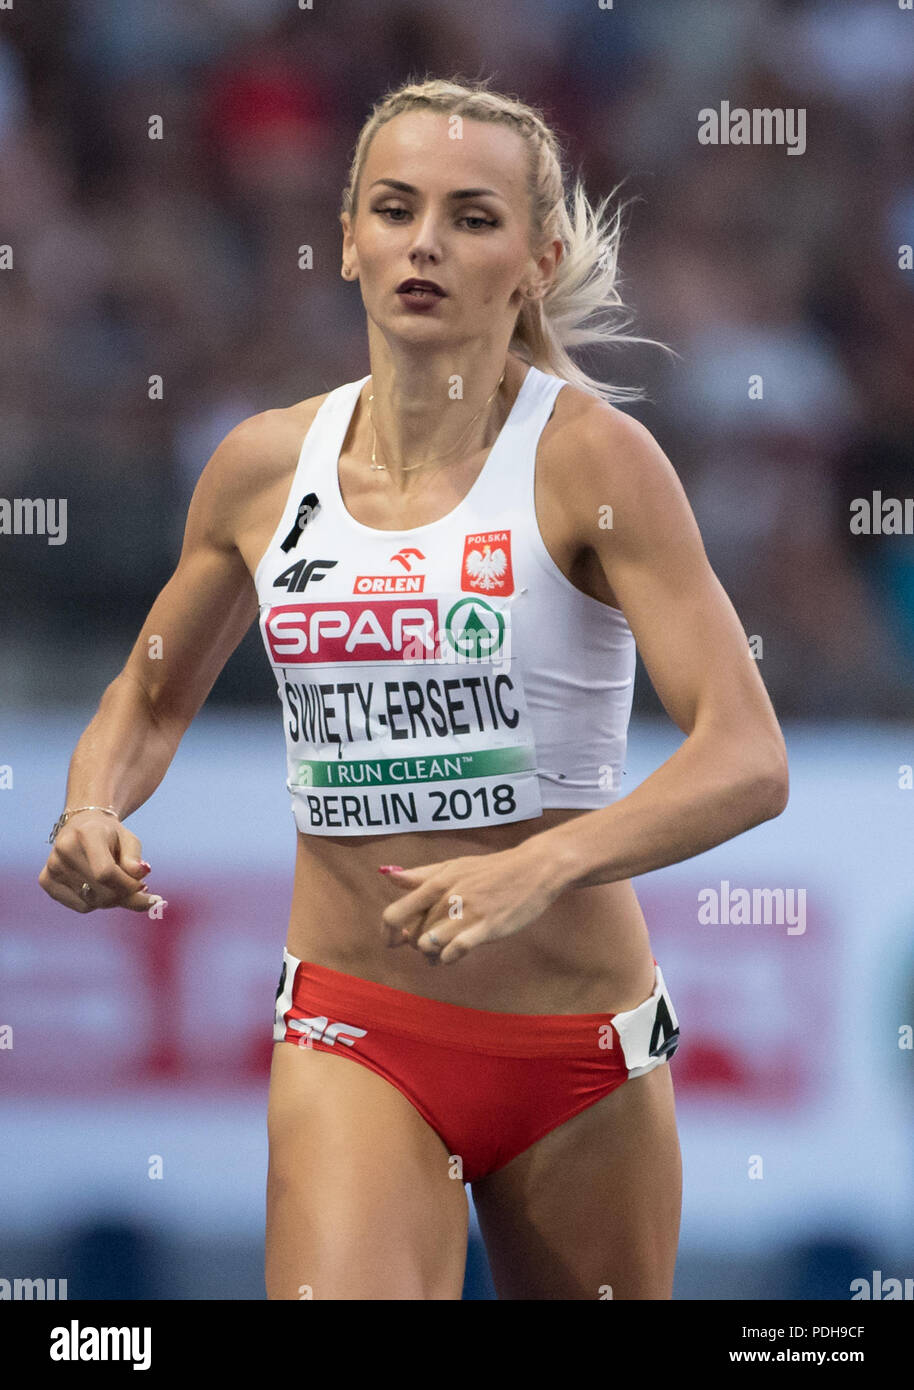 Berlin, Germany. 09th Aug, 2018. Athletics, European Athletics Championships, Olympic Stadium: 400 m, semi-finals, women: Justyna Swiety-Ersetic from Poland in action. Credit: Sven Hoppe/dpa/Alamy Live News - Stock Image